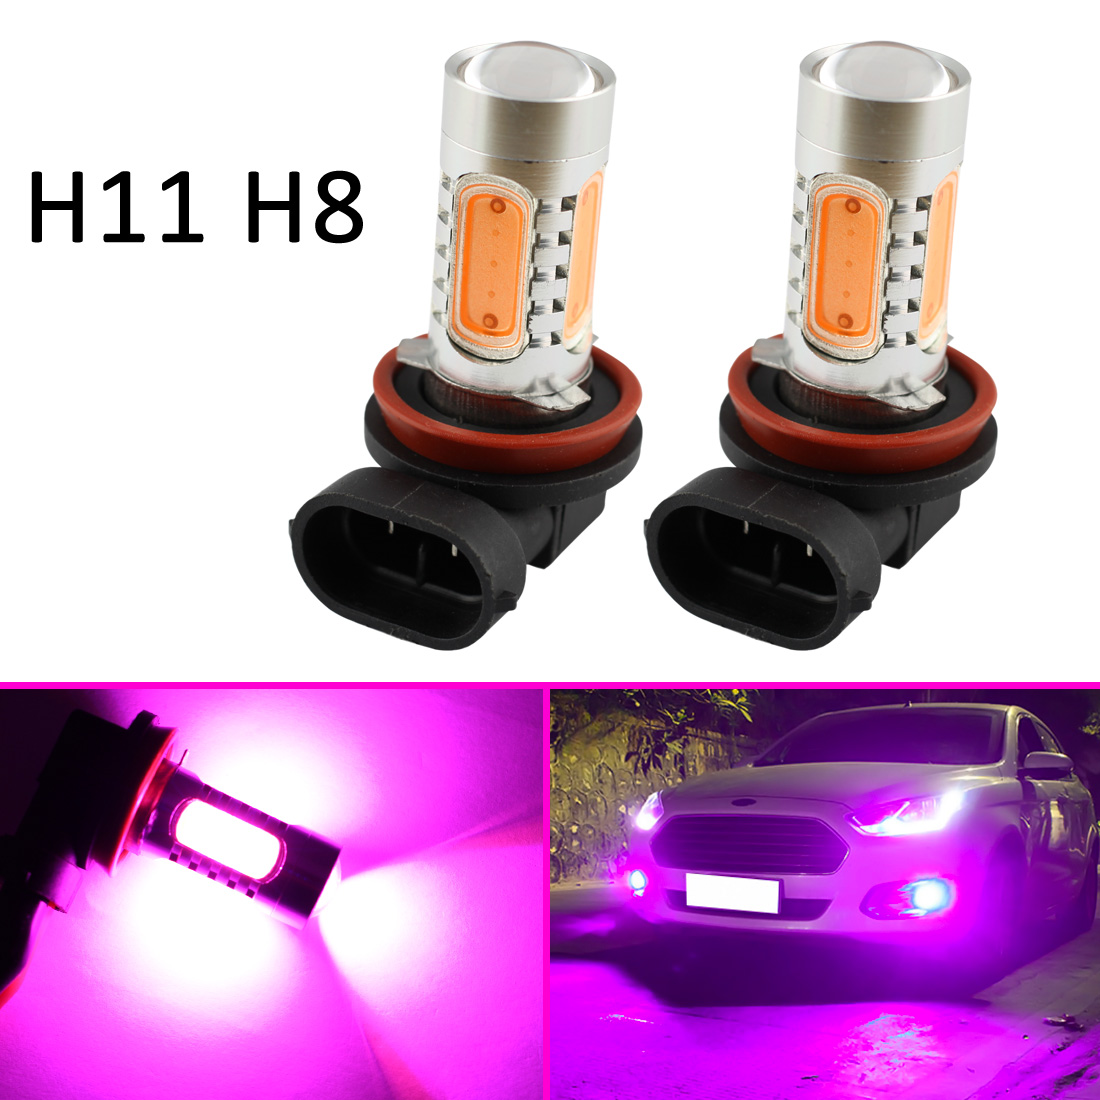 Auto LED Fog Light Foglight H11 H8 Style Fit For Car Accessories 7 5W Bulbs Driving